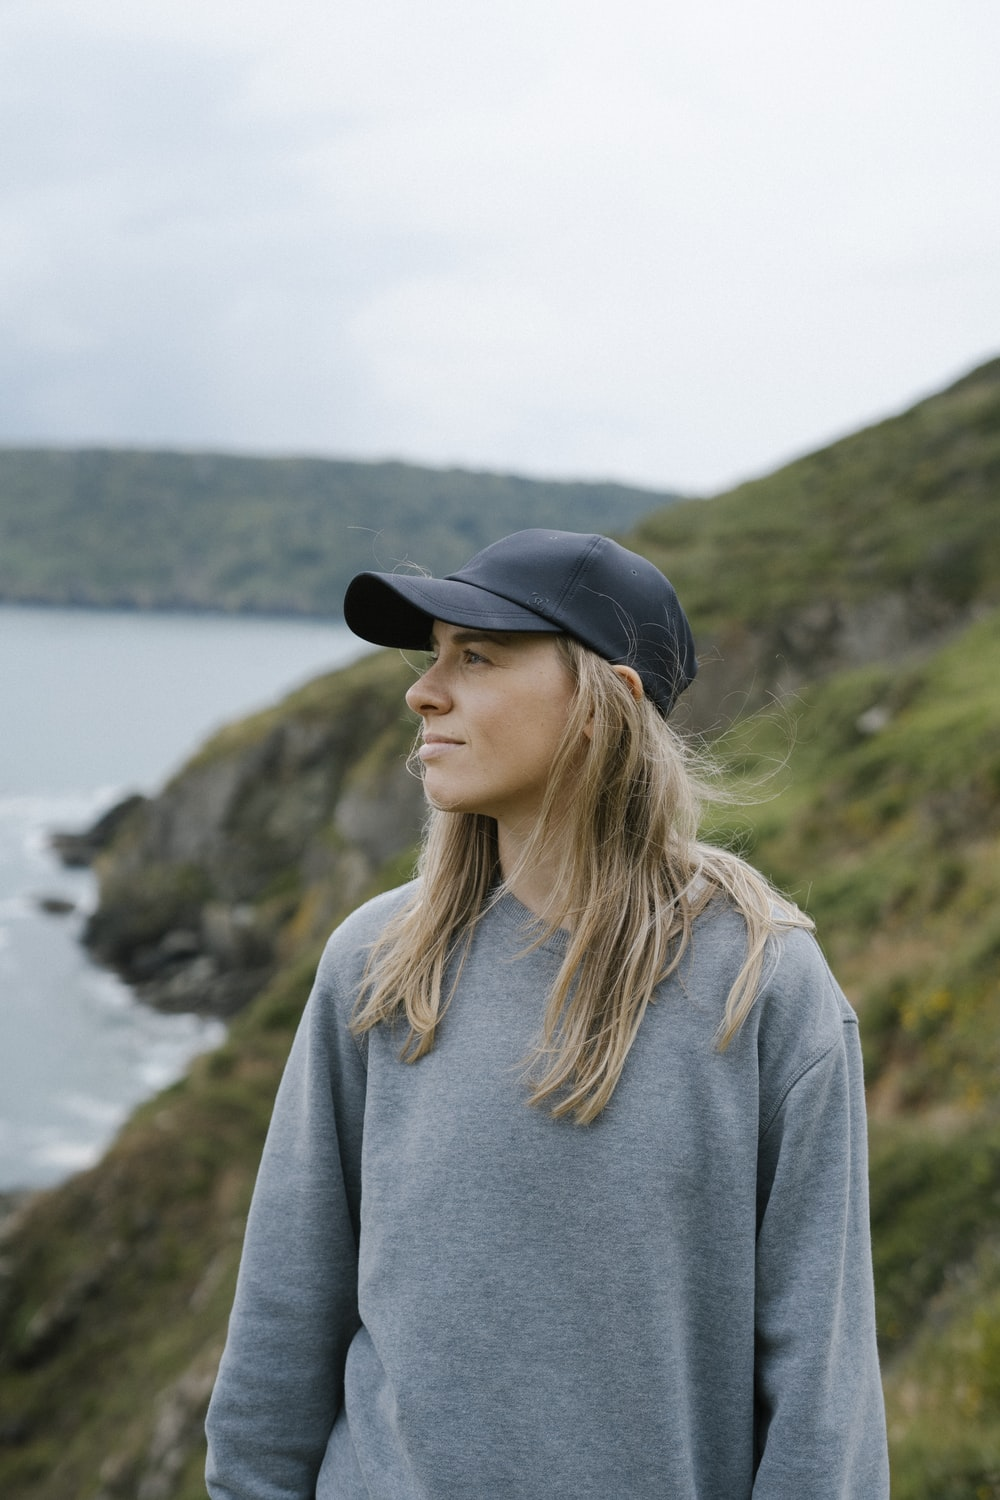 woman in gray long sleeve shirt and black hat standing near body of water during daytime